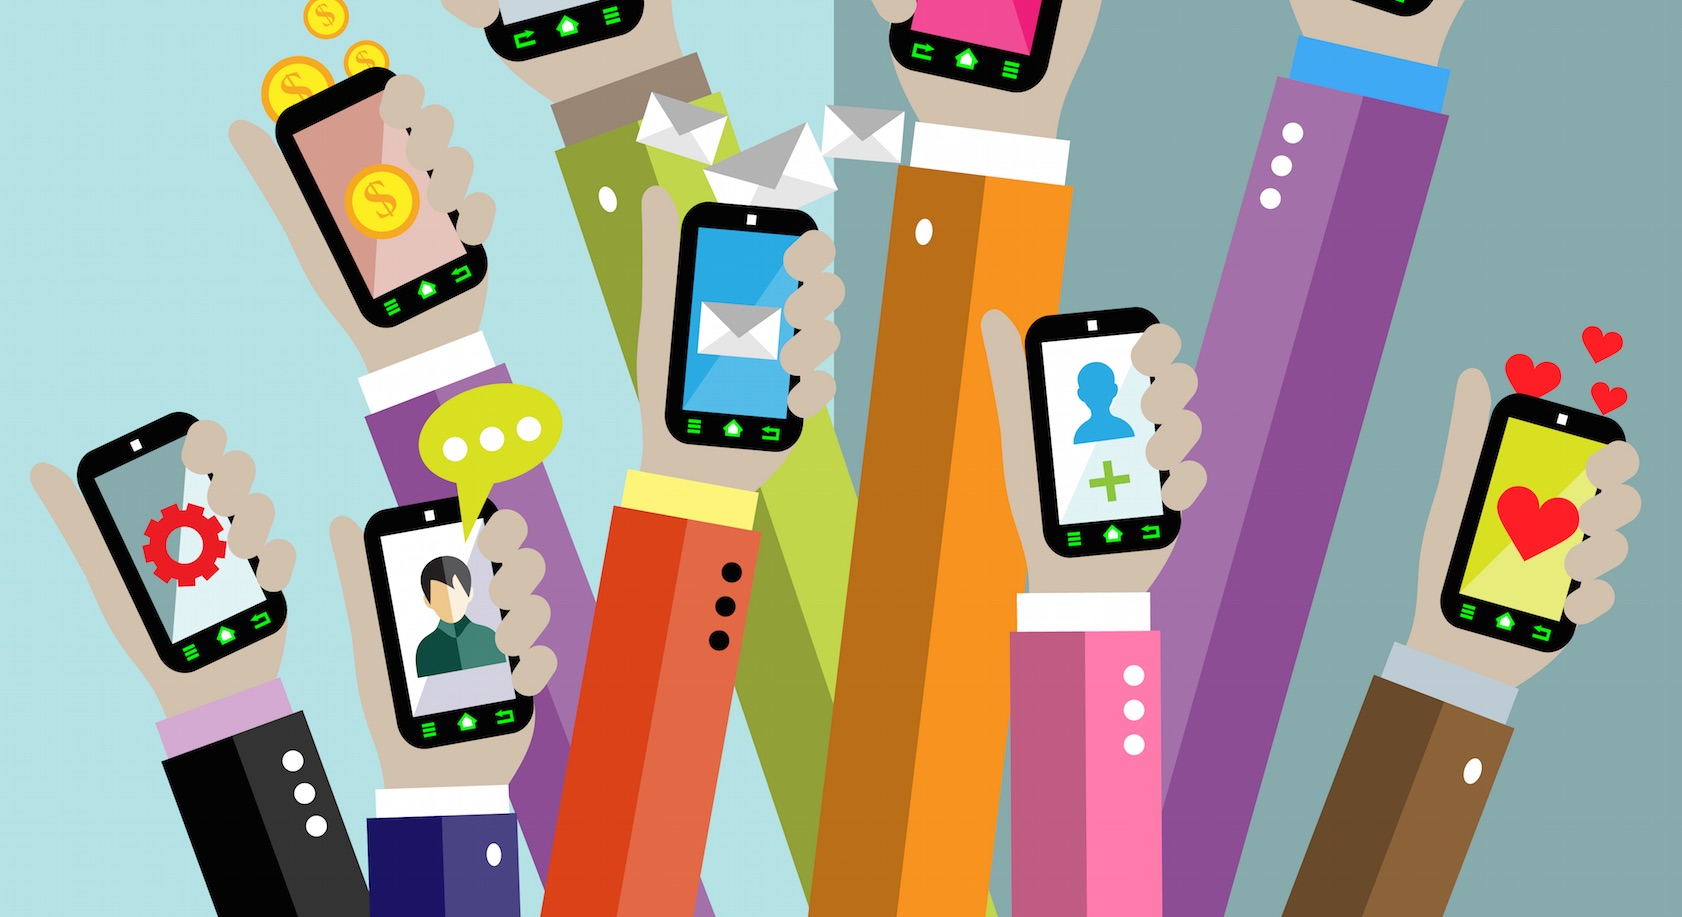 10 usability considerations for your mobile app